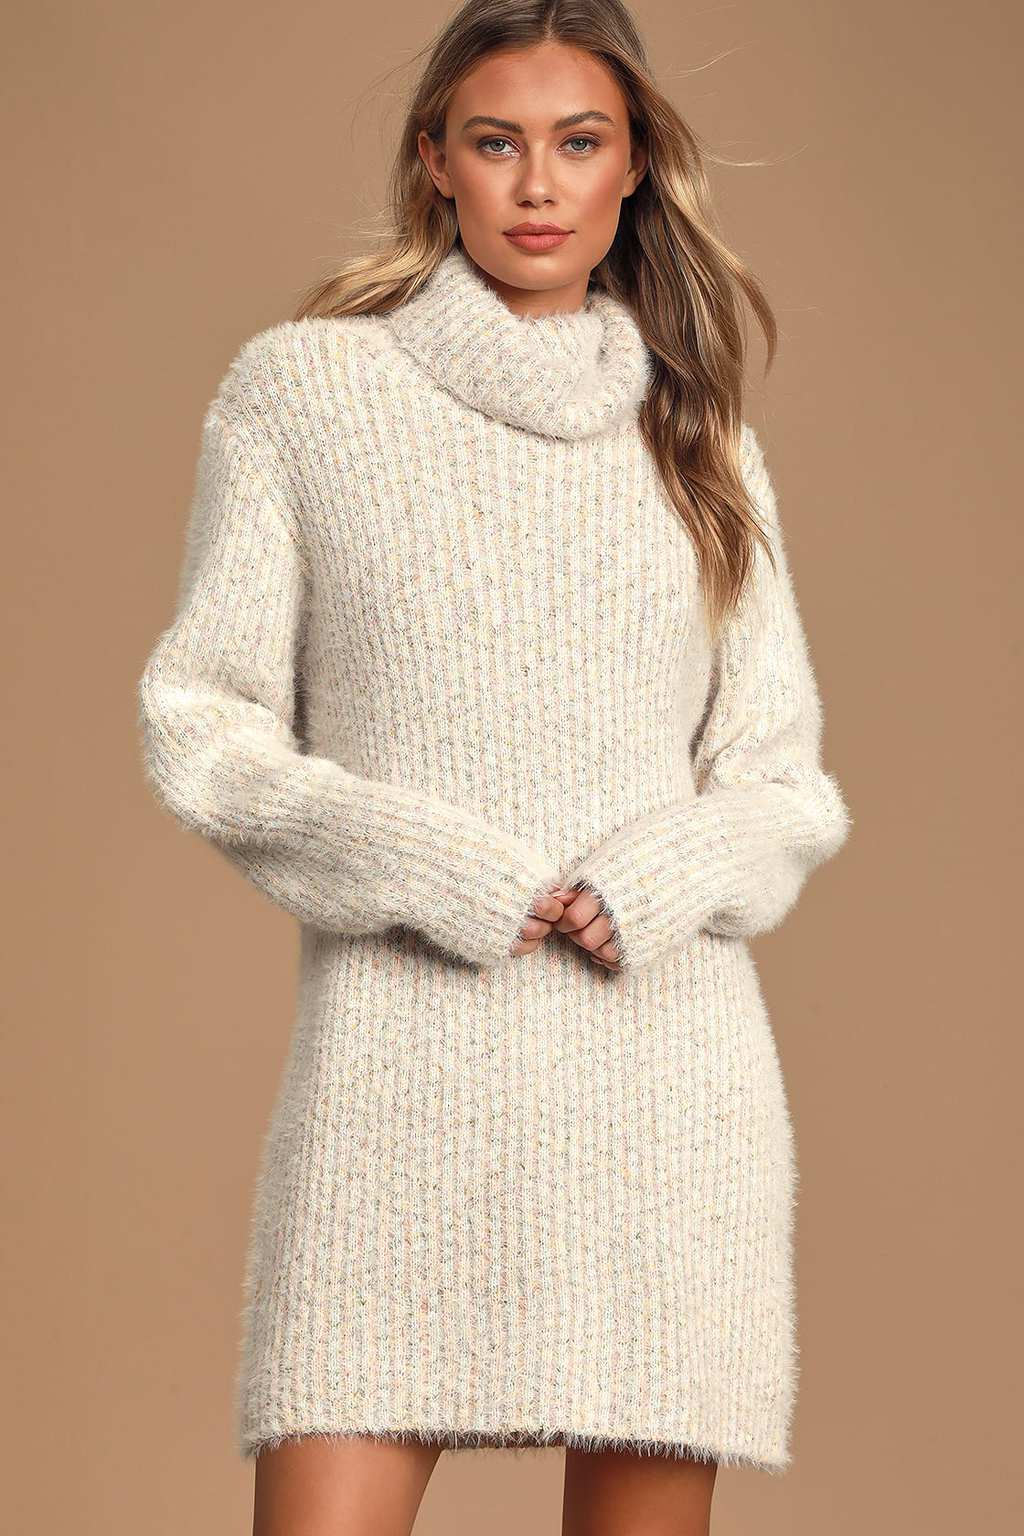 Eyelash knit sweater dress from Lulus